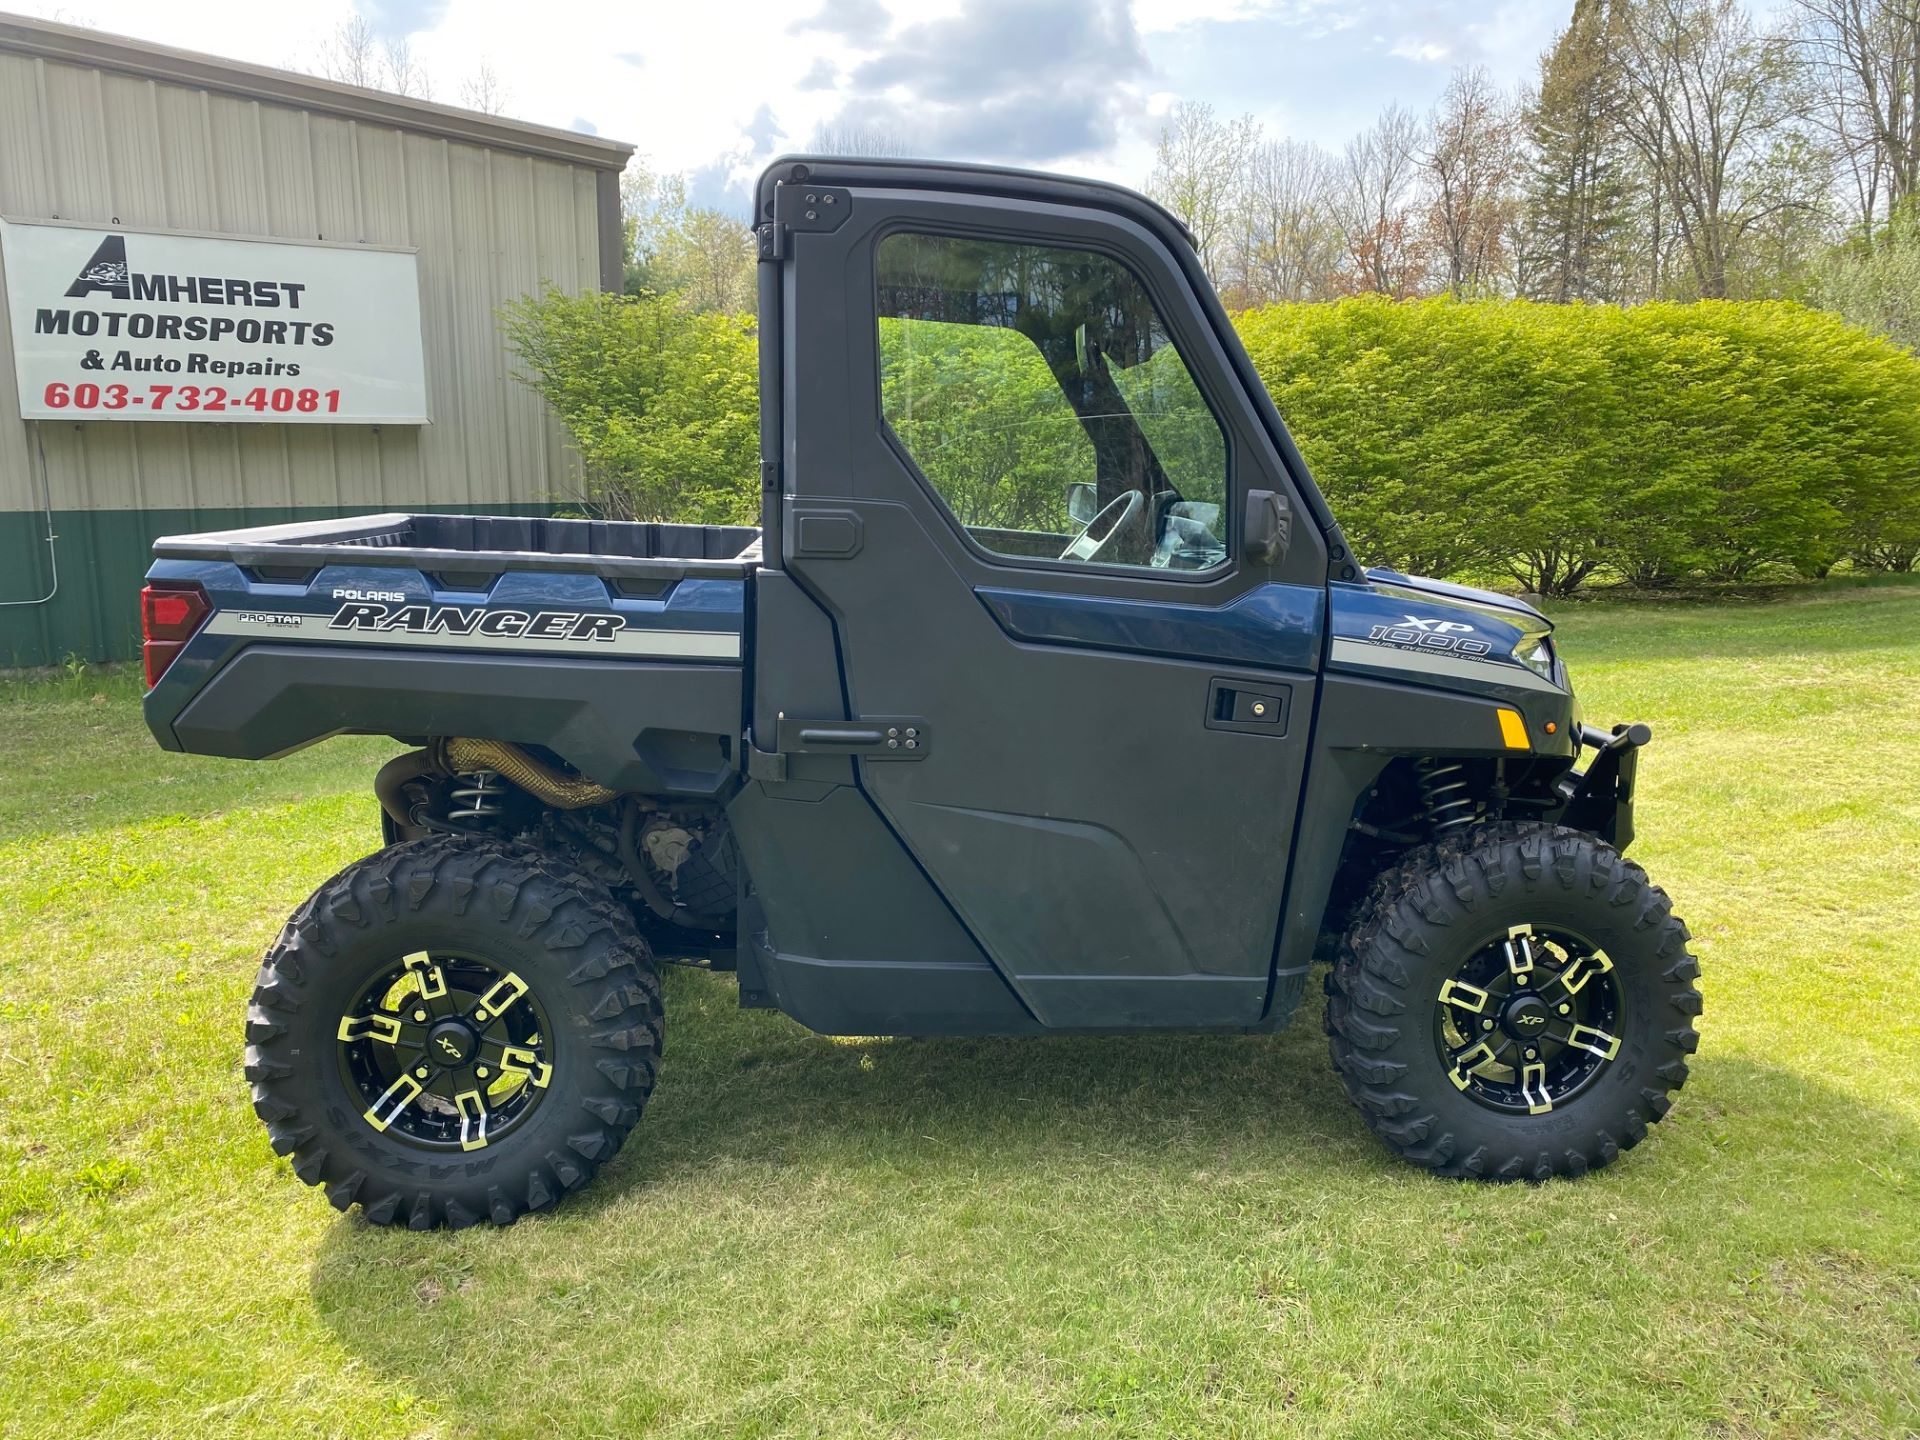 2019 Polaris Ranger XP 1000 EPS Northstar Edition in Milford, New Hampshire - Photo 6